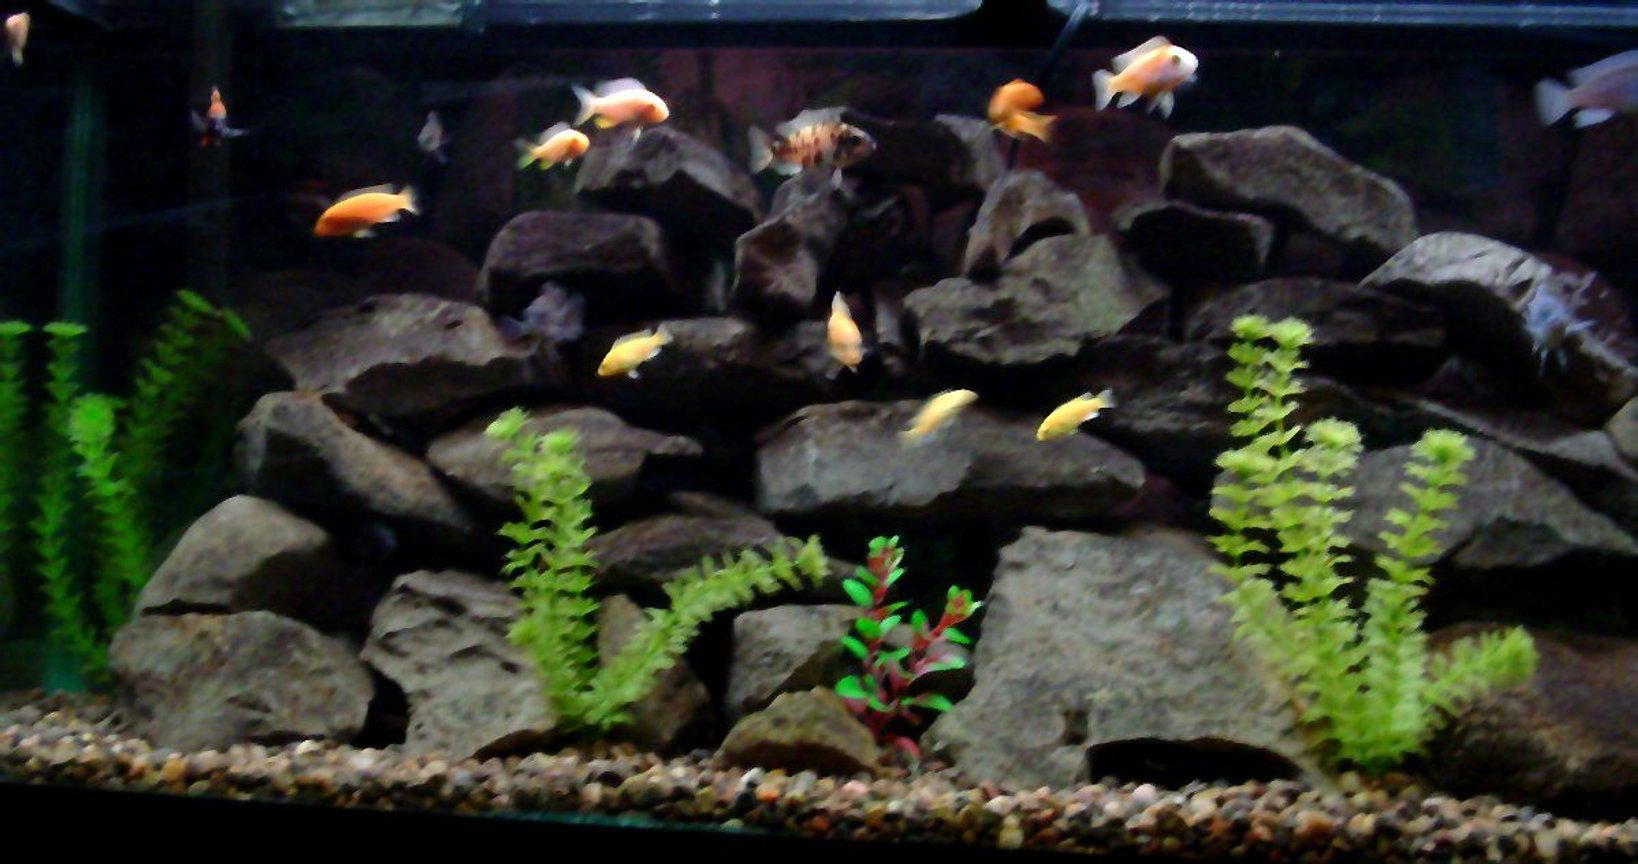 freshwater fish - pseudotropheus estherae - red zebra cichlid stocking in 55 gallons tank - 55 Gallon Malawi cichlid aquarium 3-cobalt blue zebras 3-red zebras 3 yellow labs various peacocks and a synadontis catfish